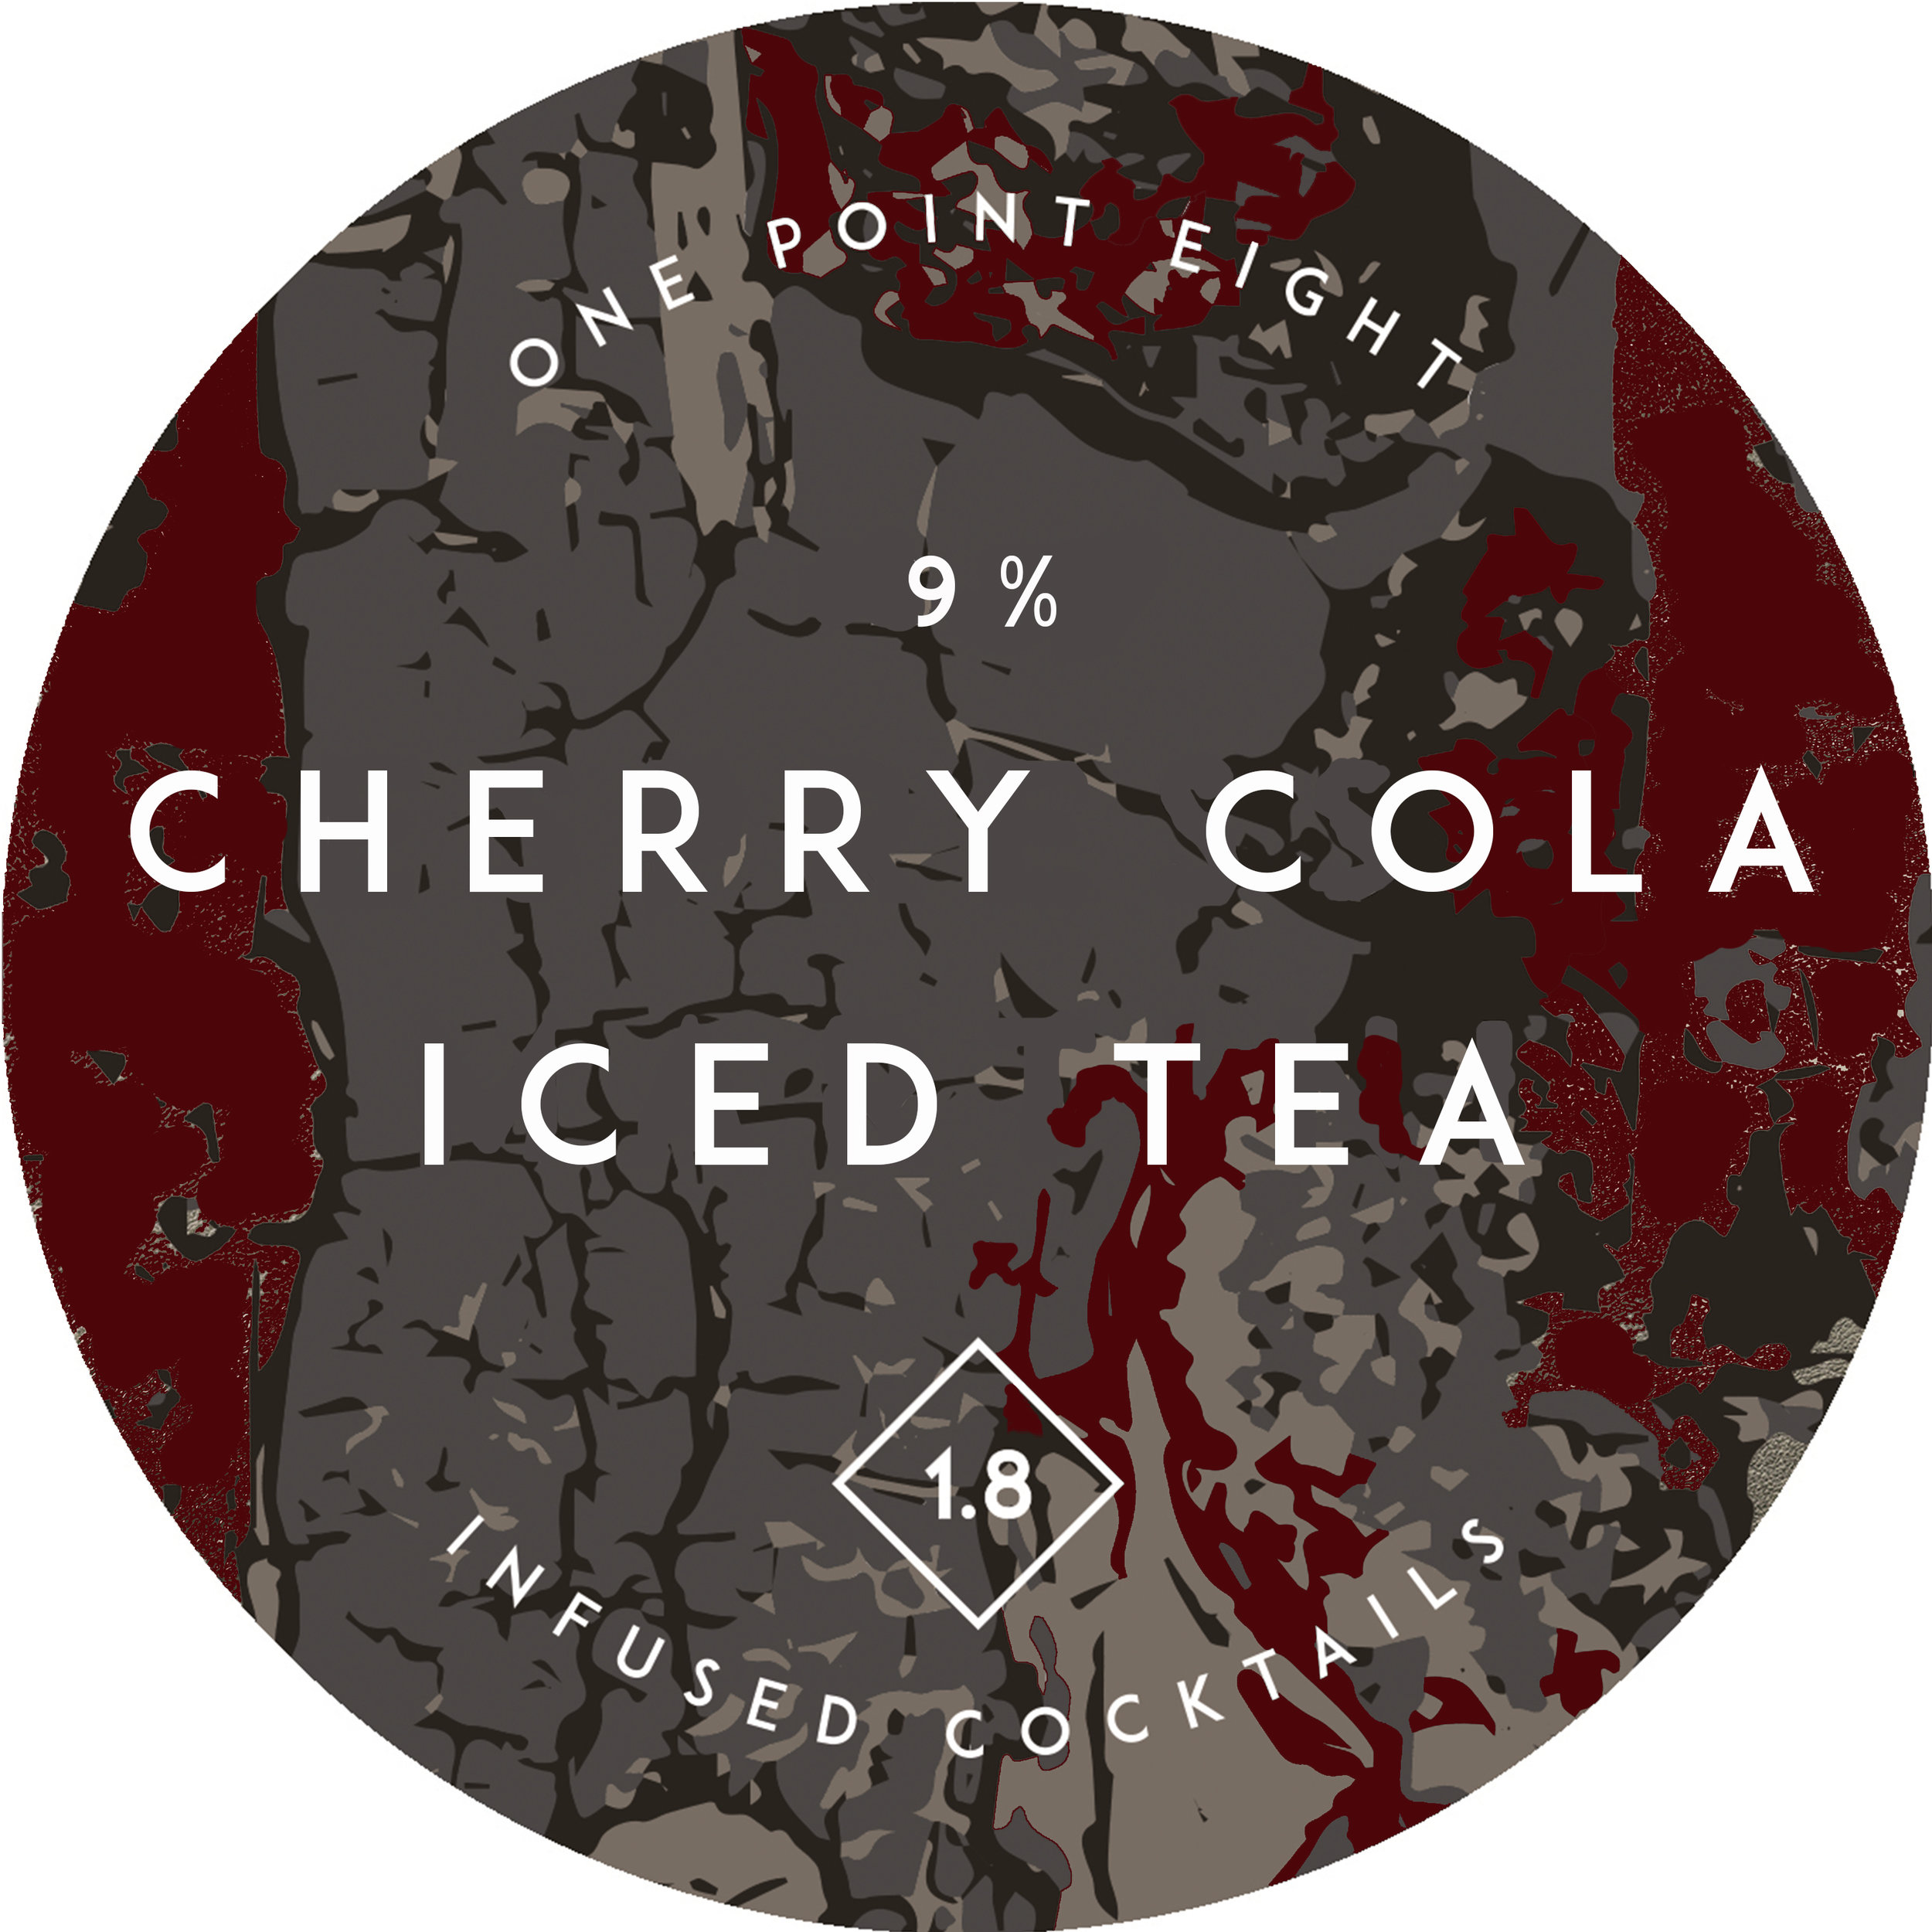 A Northern Twist on the classic Long Island, finished with Ameretto, cherry and cola. One not to be overlooked